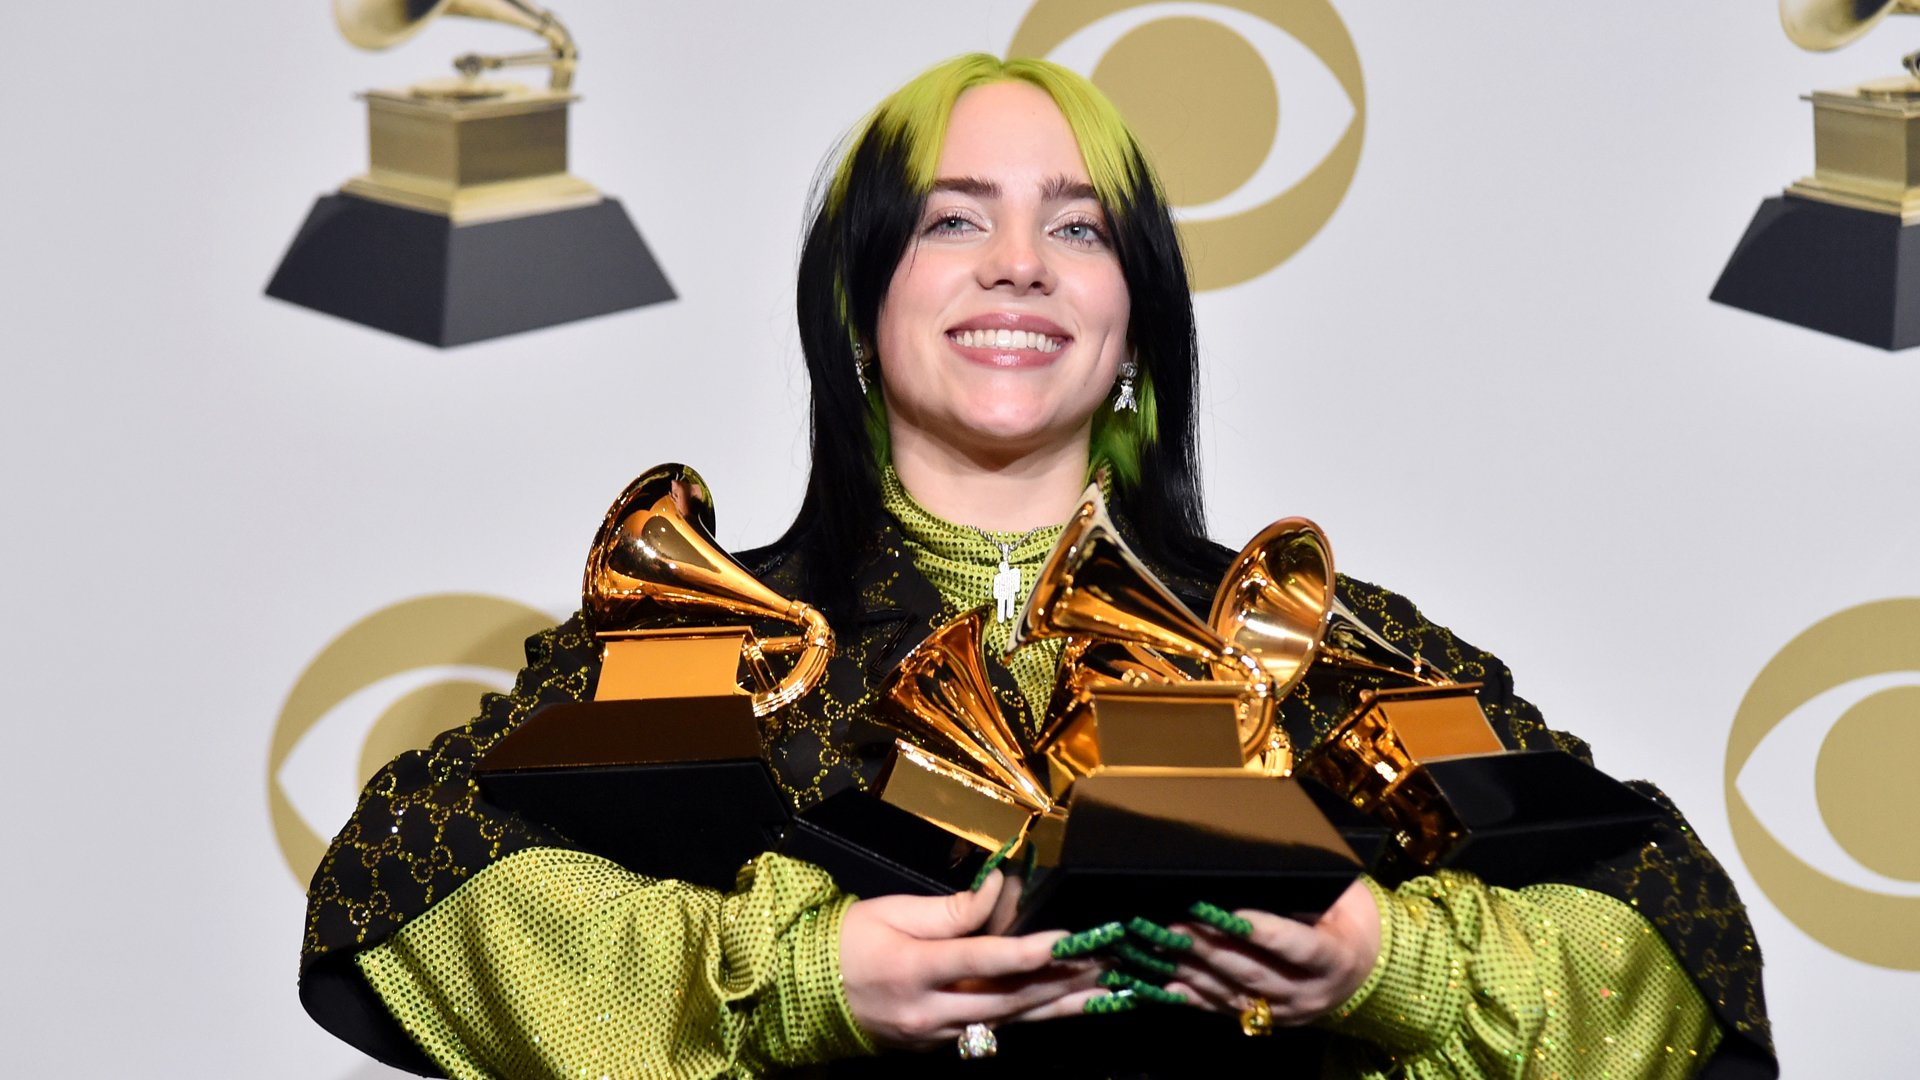 """Billie Eilish, winner of Record of the Year for """"Bad Guy"""", Album of the Year for """"when we all fall asleep, where do we go?"""", Song of the Year for """"Bad Guy"""", Best New Artist and Best Pop Vocal Album for """"when we all fall asleep, where do we go?"""", poses in the press room during the 62nd Annual GRAMMY Awards at STAPLES Center on January 26, 2020 in Los Angeles, California. (Credit: Alberto E. Rodriguez/Getty Images/The Recording Academy)"""